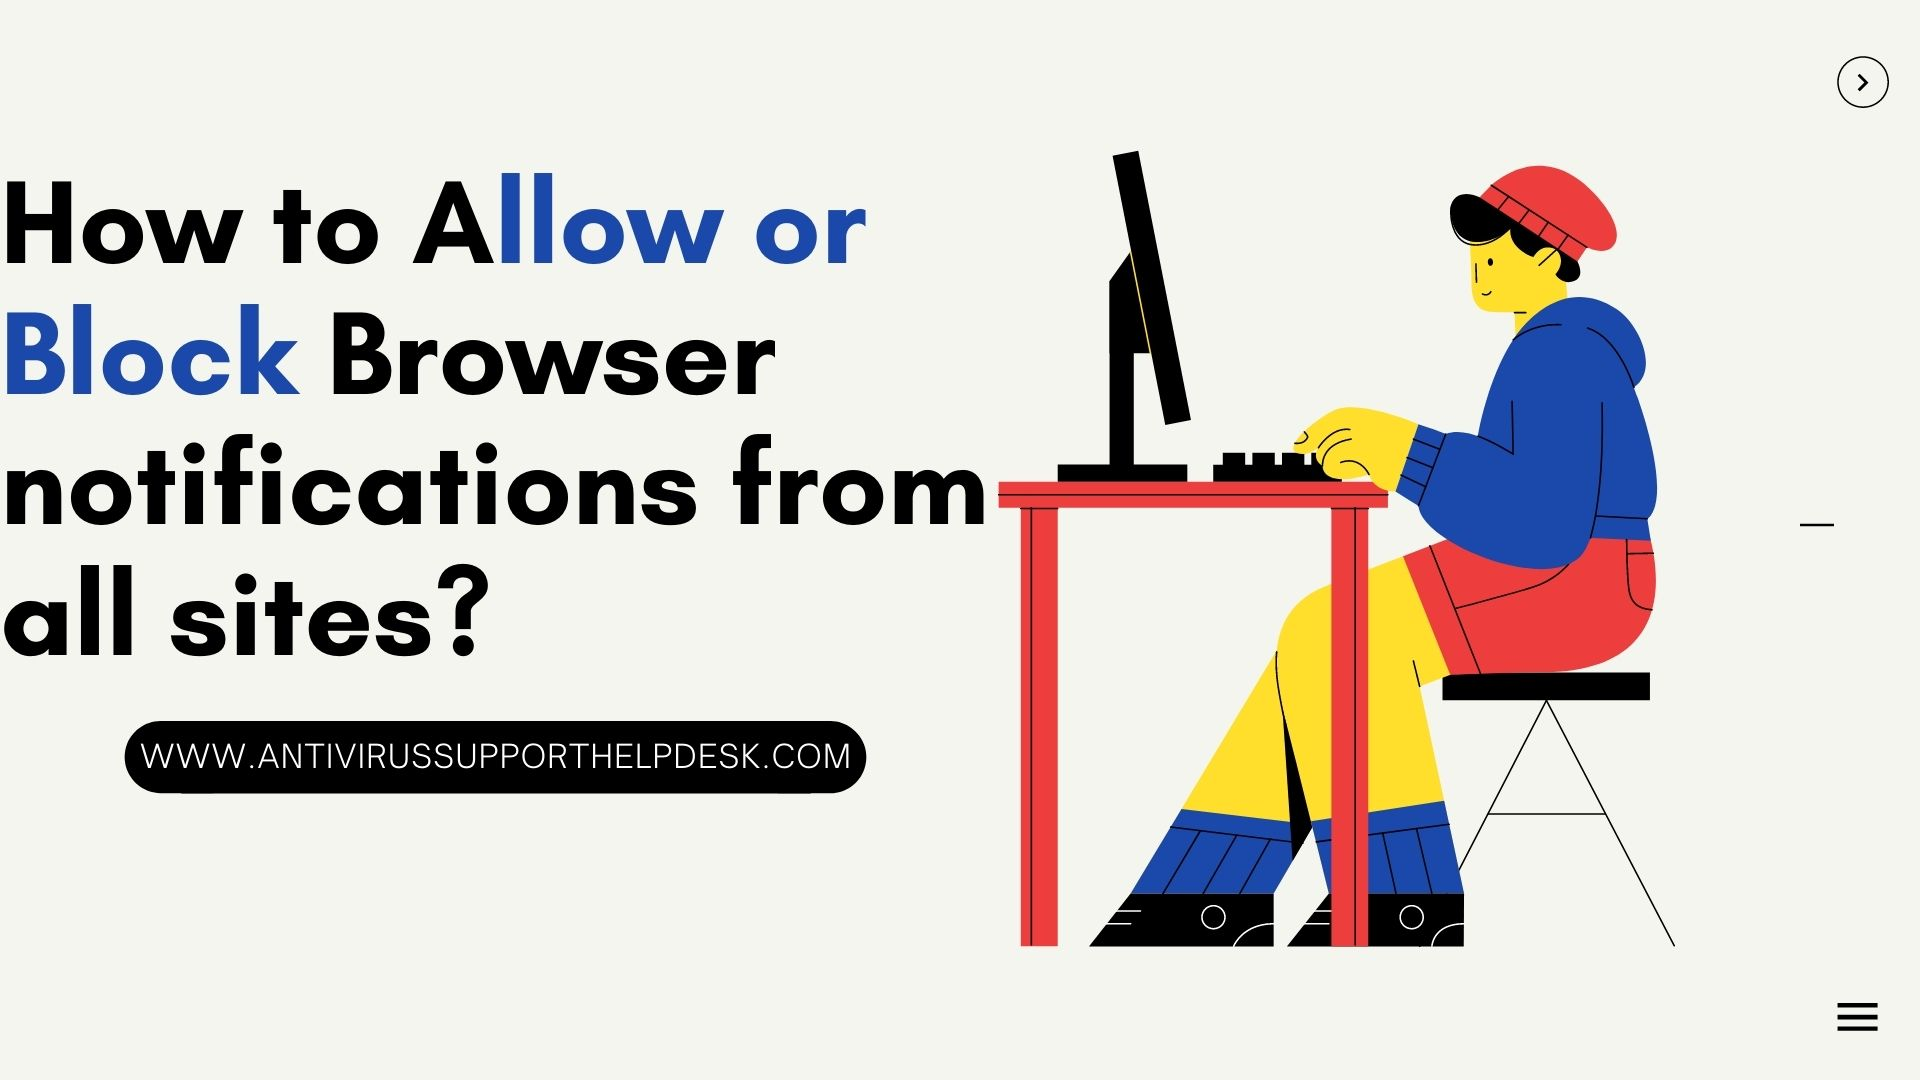 at that point Call 1-800-445-2810 live Person will assist you with venturing by step. How to allow or block Browser notifications from all sites?